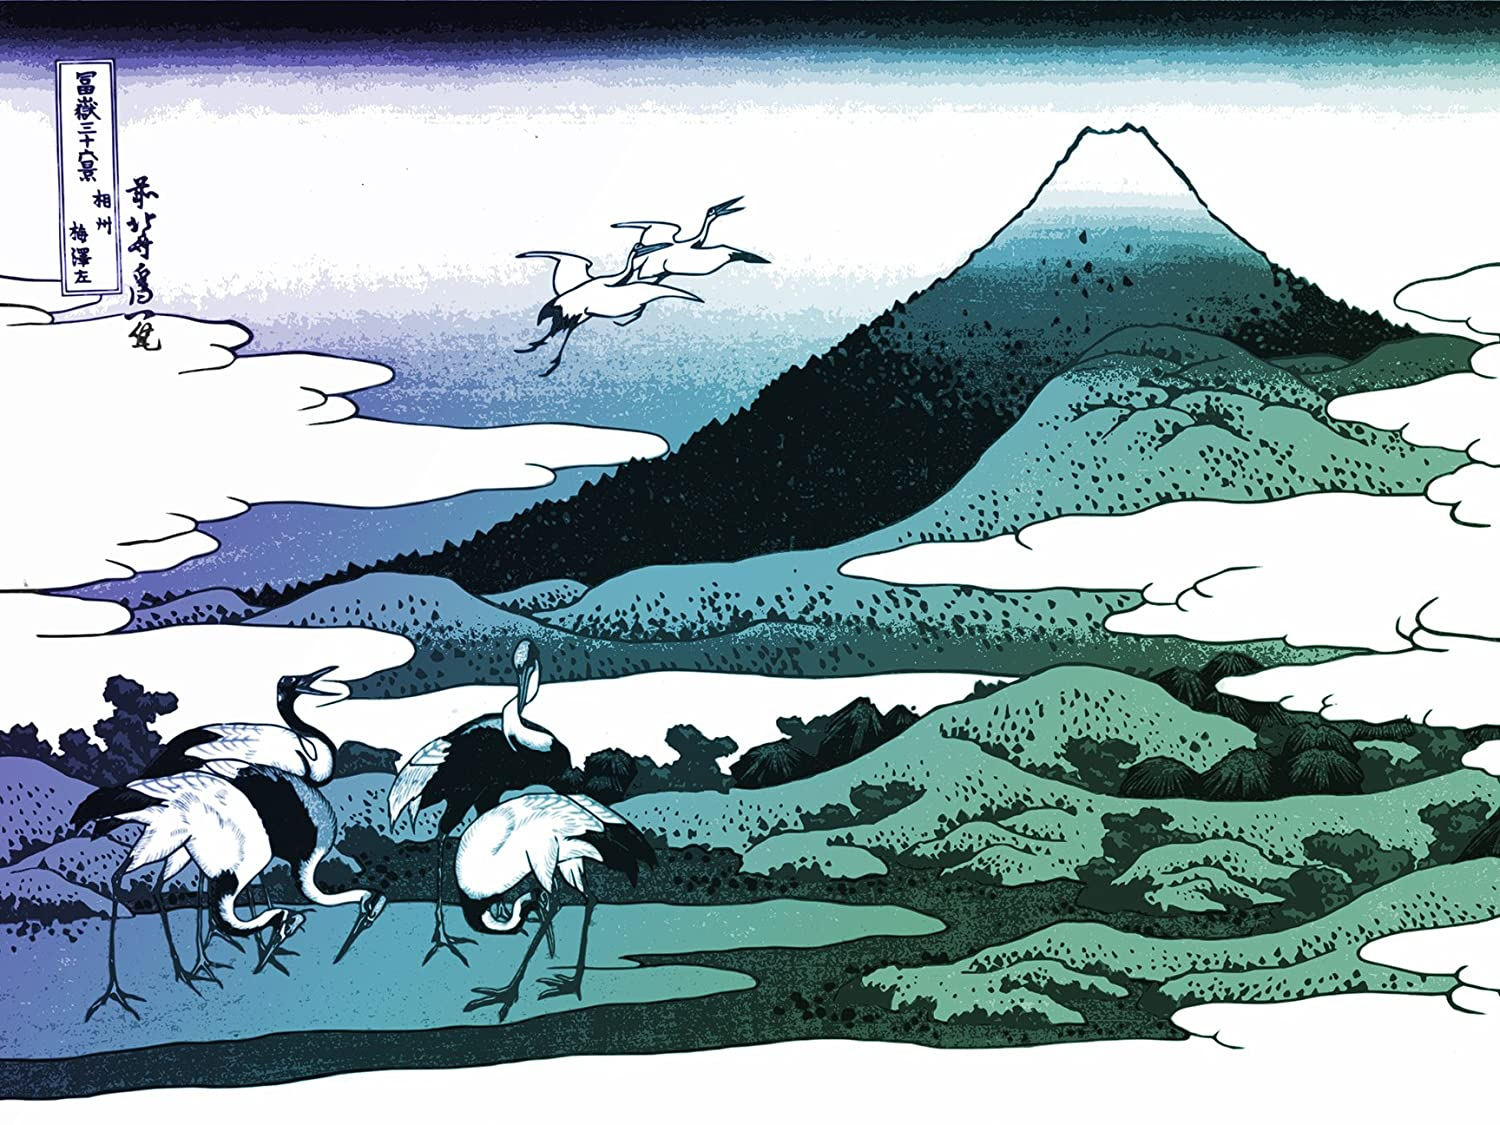 ArtVerse HOK014A2228A Japanese Cranes and Mount Fuji Wood Block Print in Cool Tones Ombre Removable Art Decal 22 x 28 RetailSource Ltd